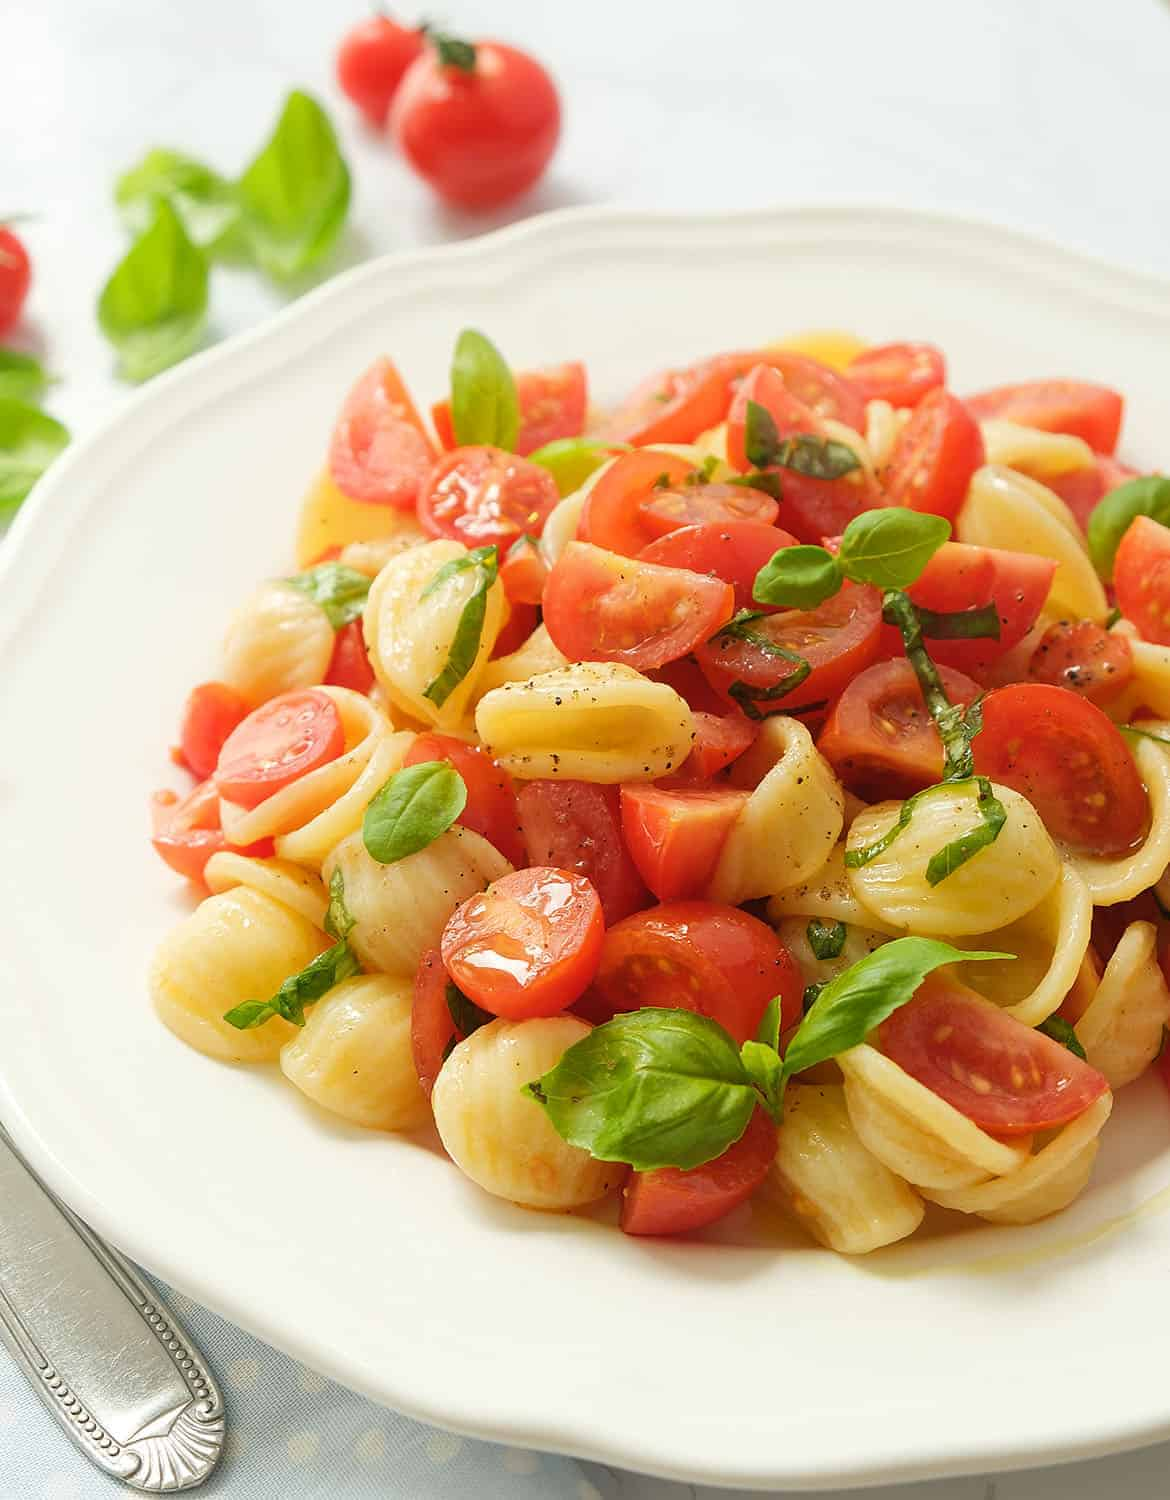 Tomato pasta salad with fresh basil leaves on a white plate.